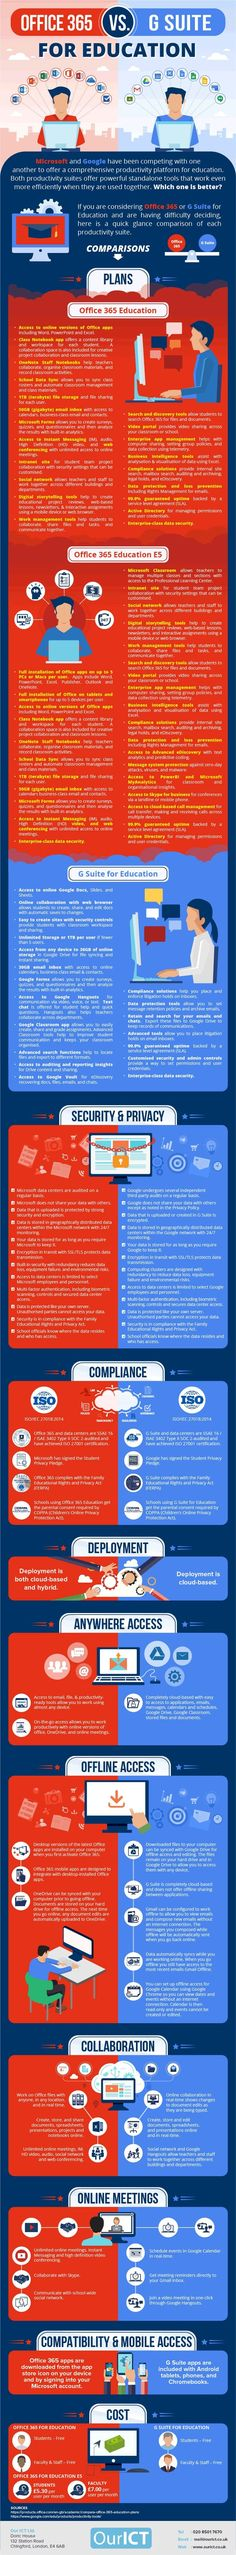 Office 365 Education vs. G Suite for Education - #infographic